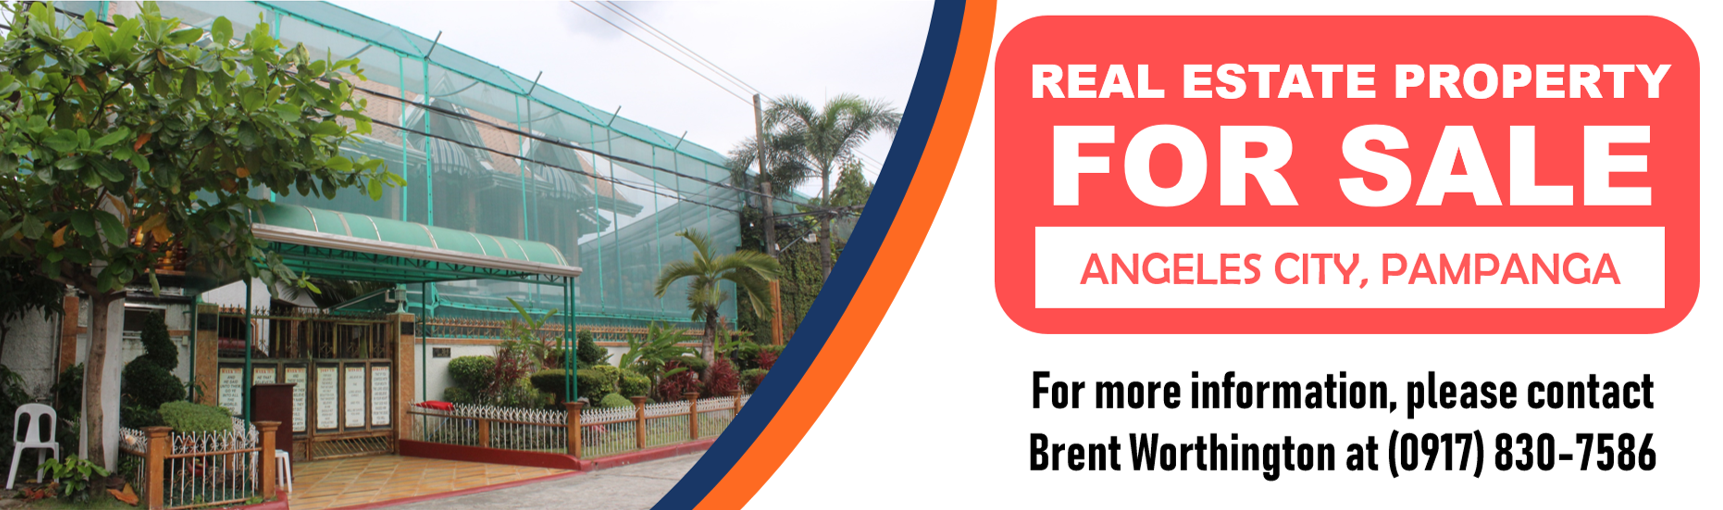 For sale: Real estate in Angeles, Pampanga